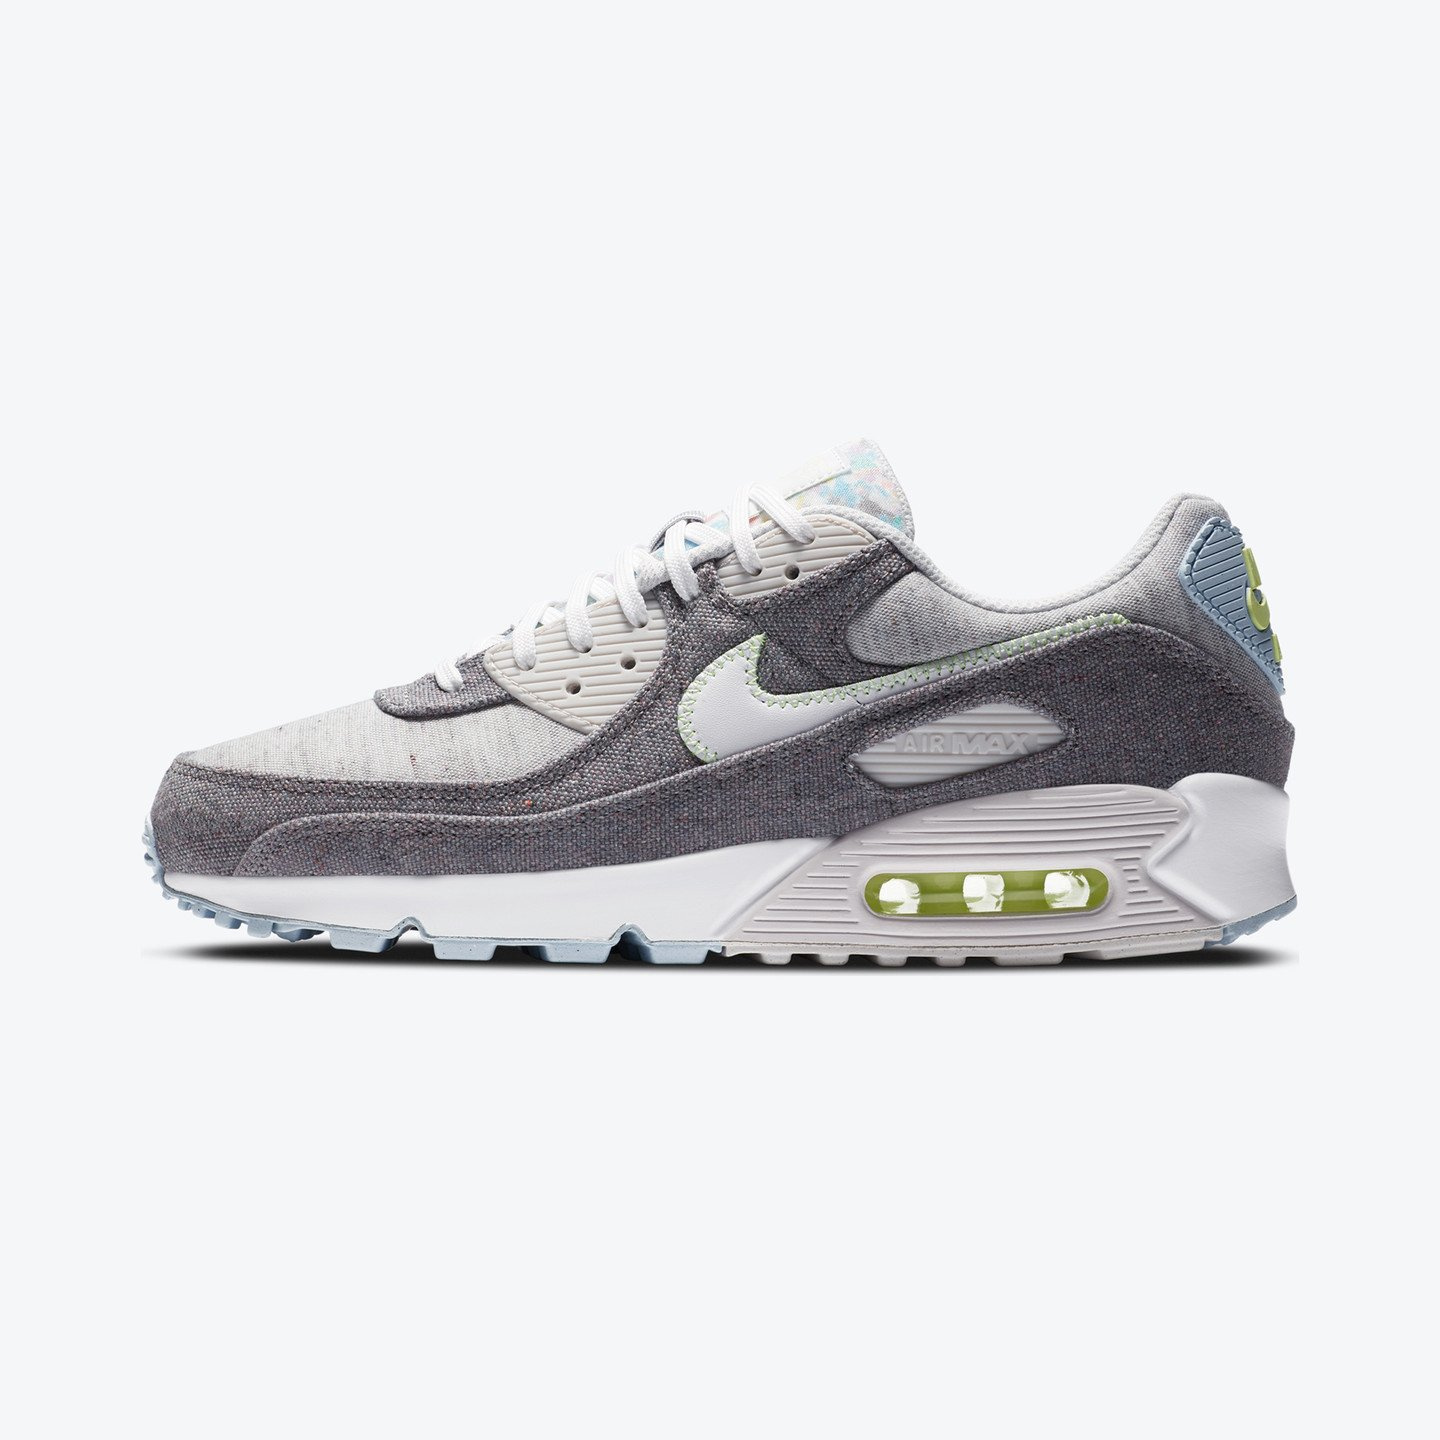 Nike Air Max 90 NRG Recycled Vast Grey / Barely Volt / Celestine Blue / White CK6467-001